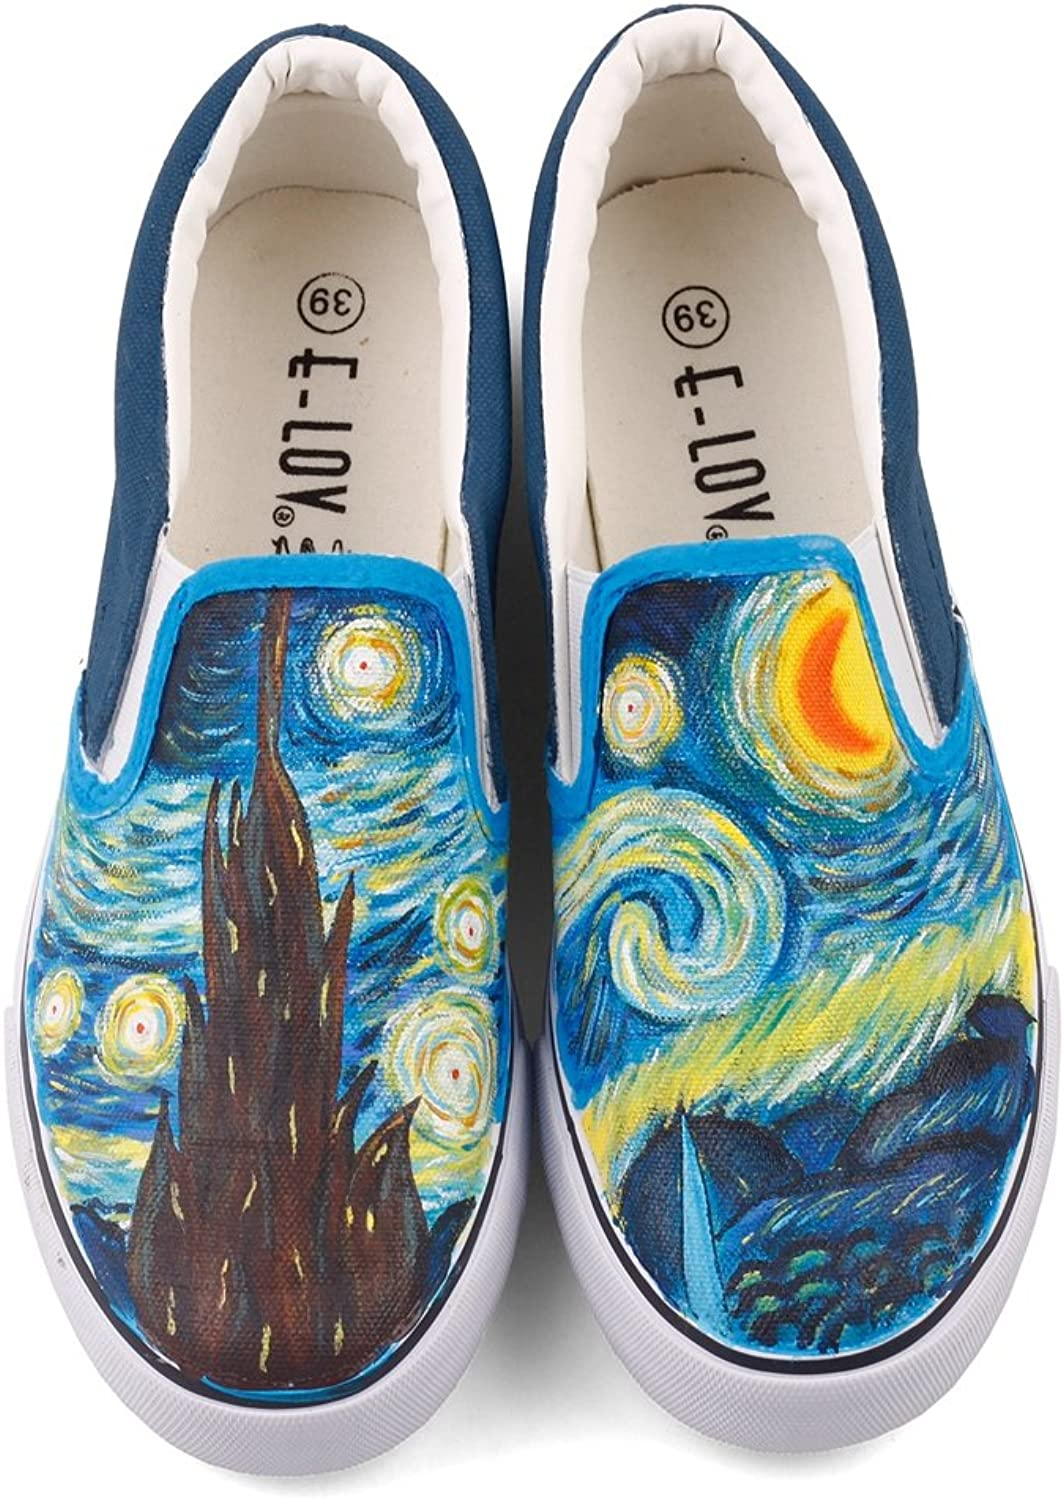 ElovForU Abstract Oil Painting Starry Night Vincent Gogh Reproduction Artwork Painted Casual Walking shoes Loafers (9.5 M US Women   8 M US Wen  CN42, White W204C)